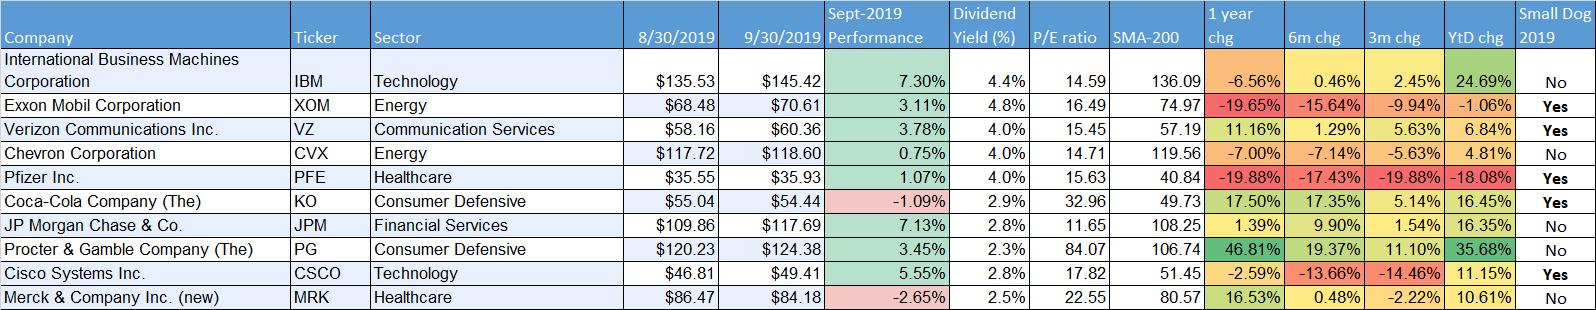 Dogs of the dow sept 2019 performance